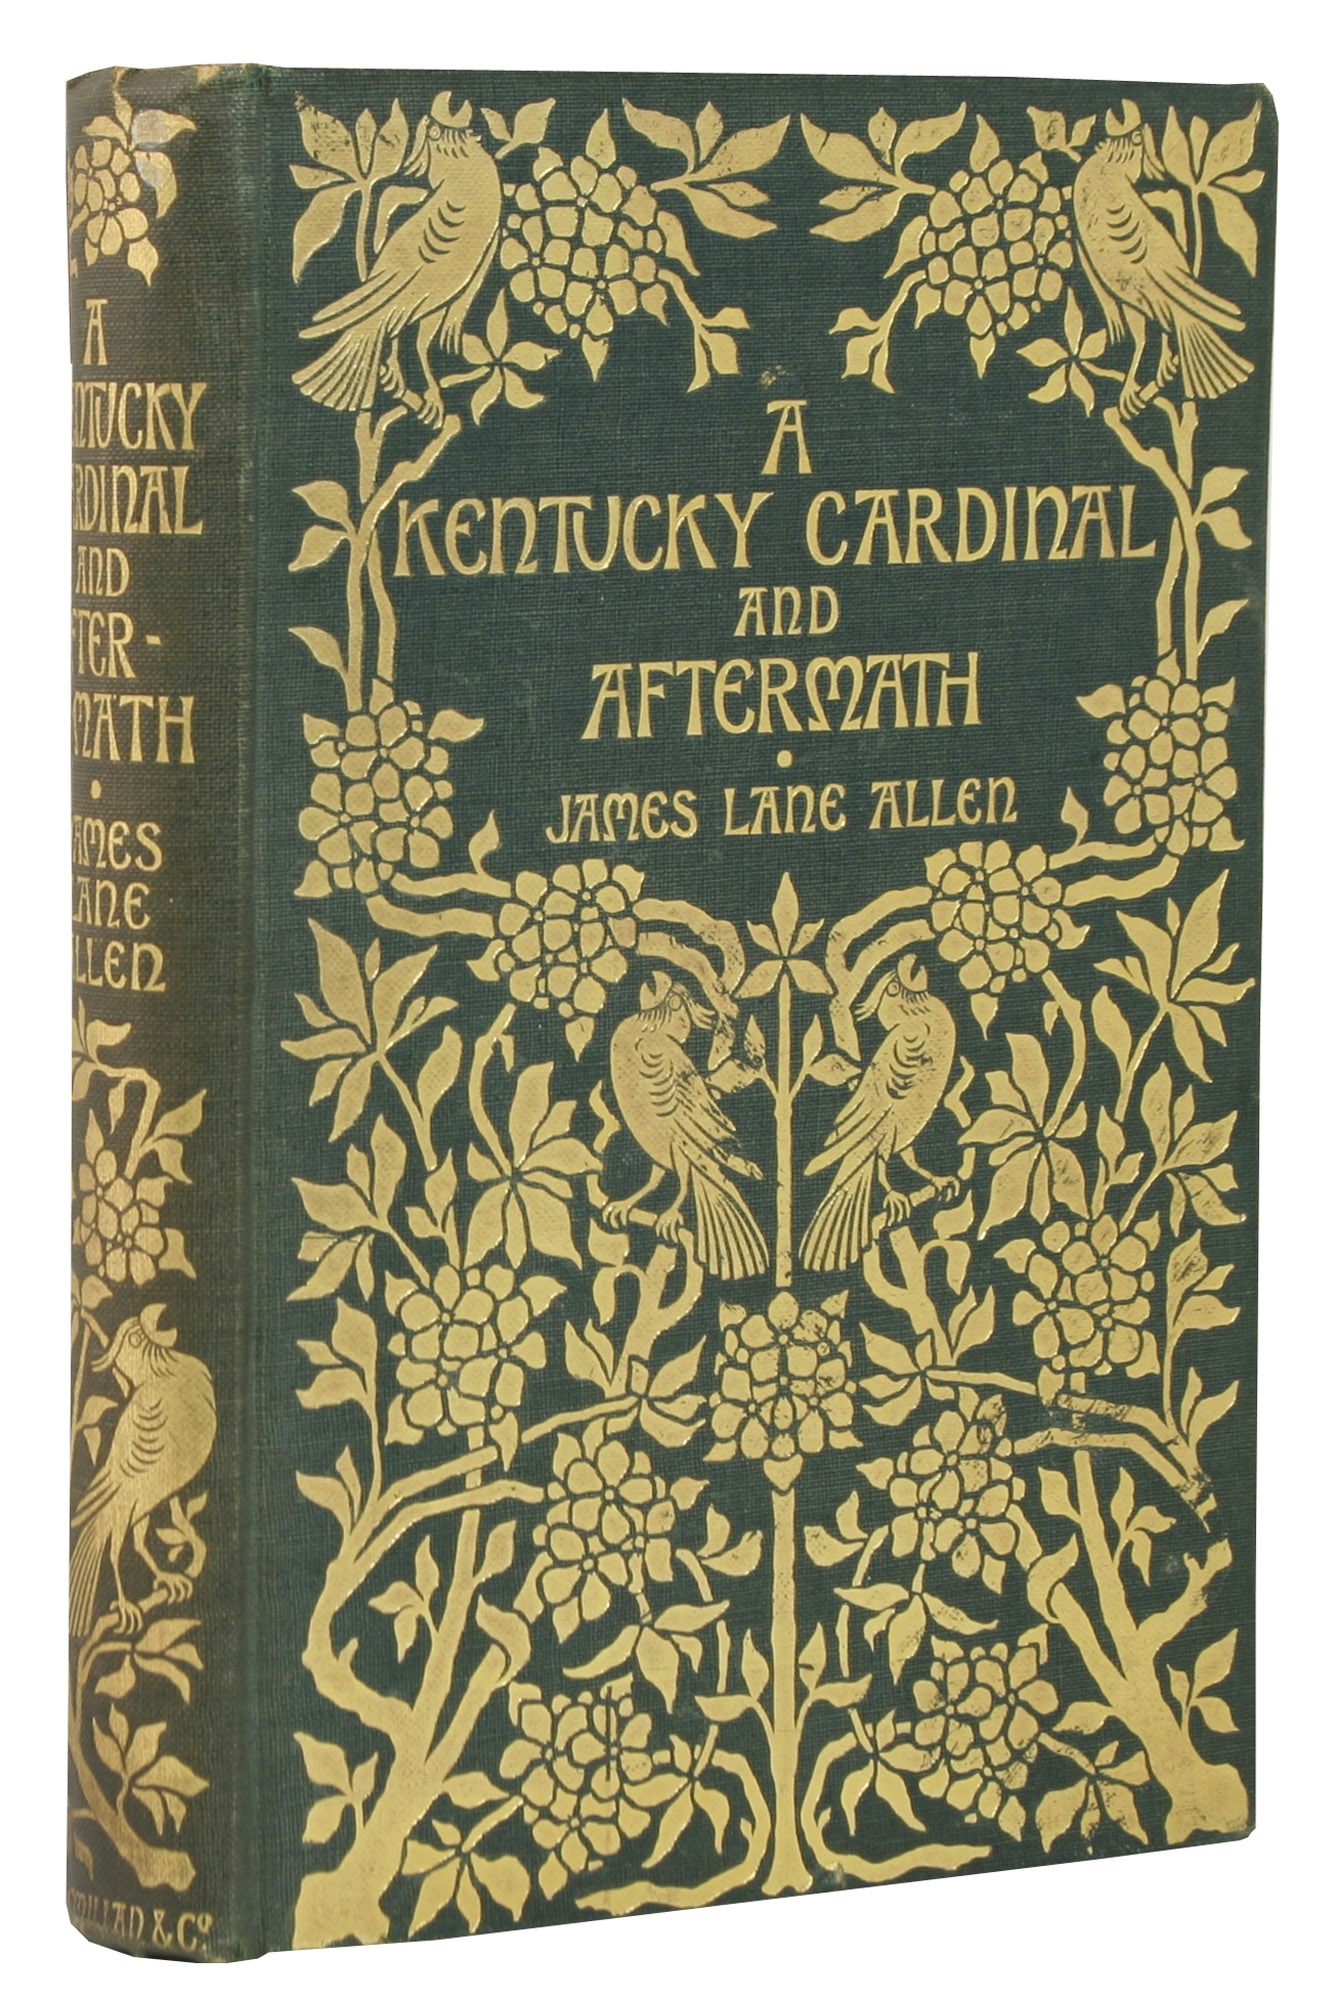 A Kentucky Cardinal and Aftermath - ,